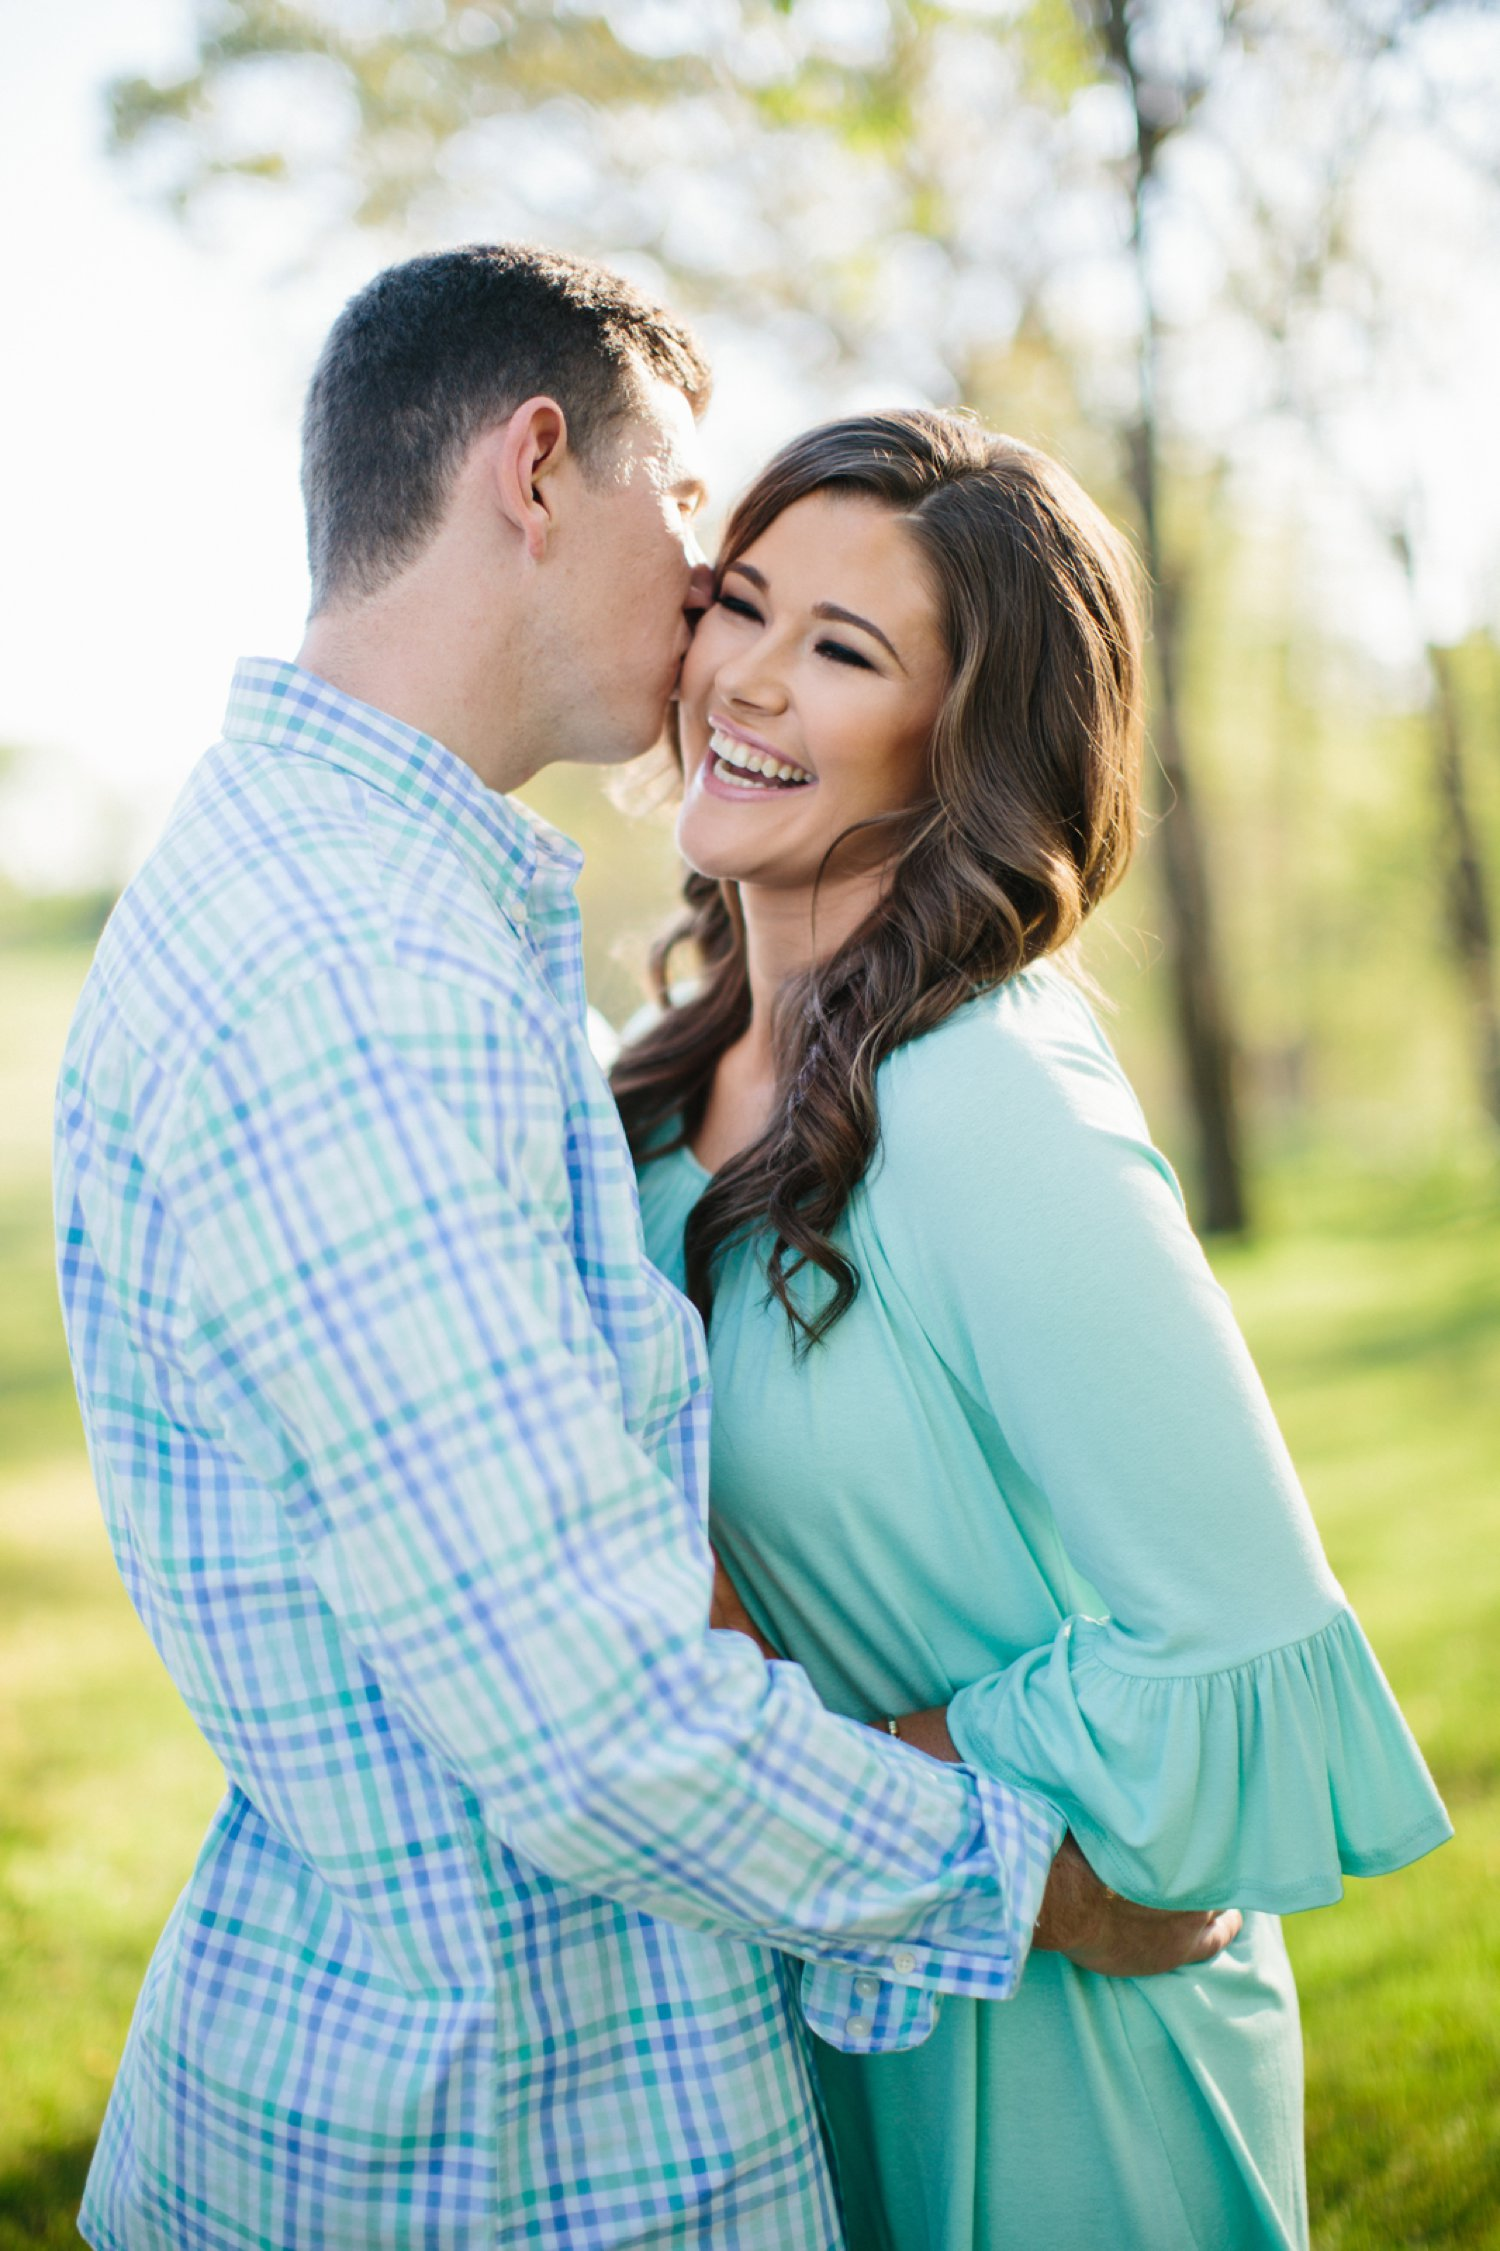 Breanna-Matt-Engagement-009.jpg